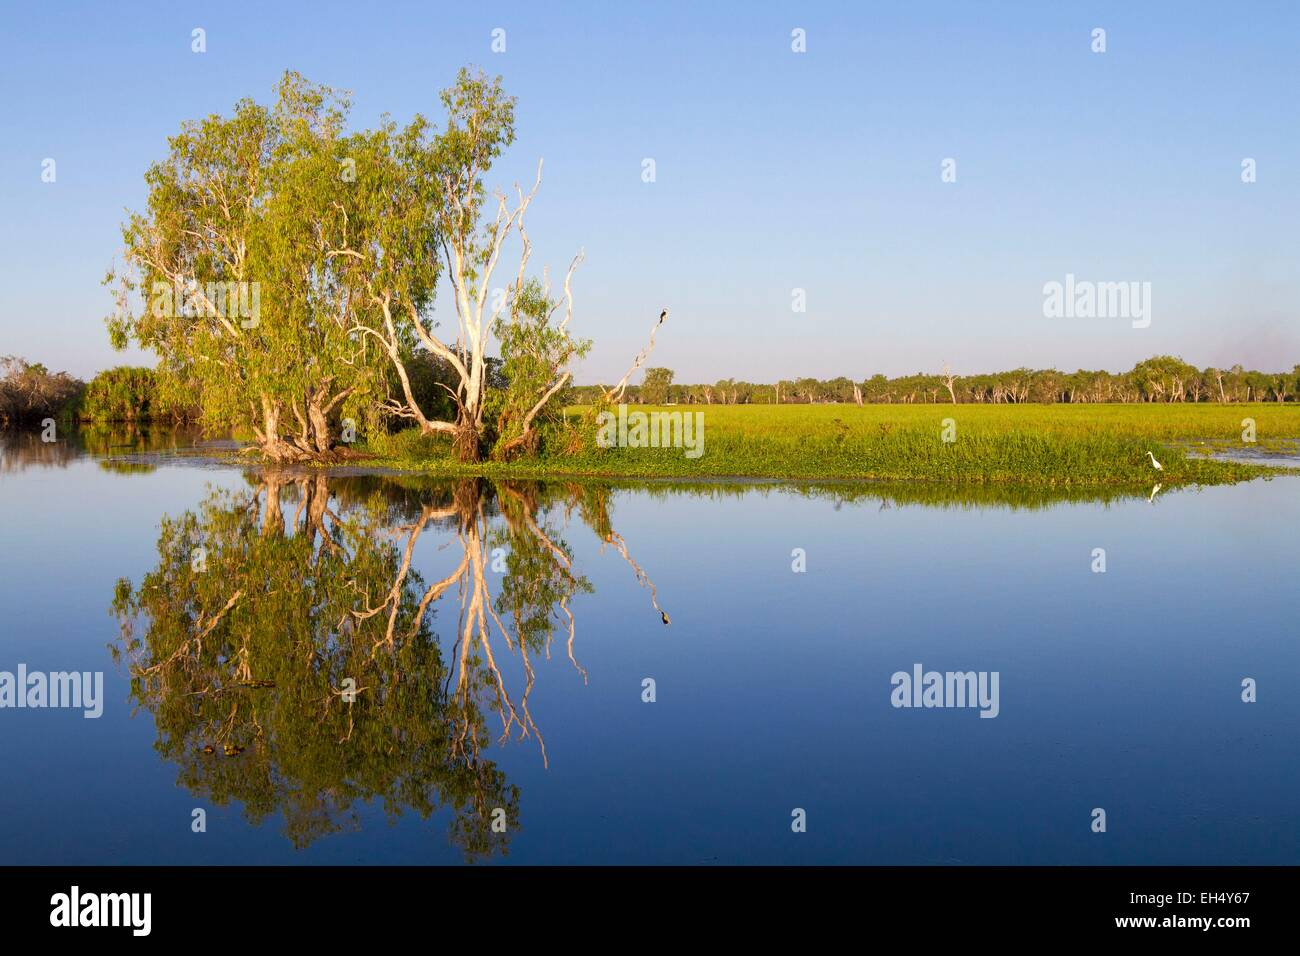 Australia, Northern Territory, Kakadu National Park, listed as World Heritage by UNESCO, Yellow Water Billabong - Stock Image